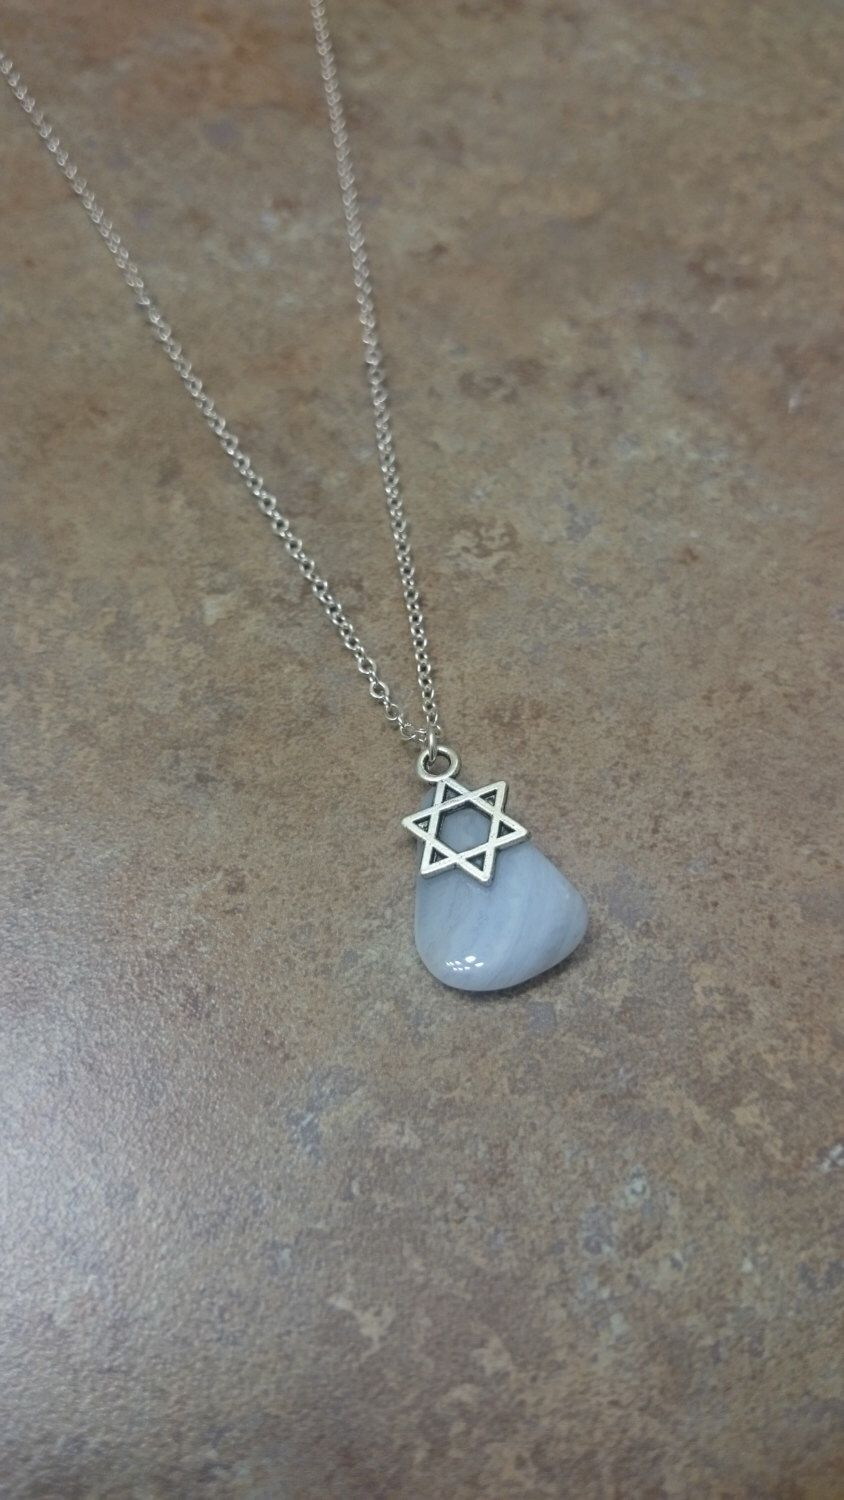 hand women magen plated david hamsa wholesale hexagram jewelry product necklace pendant silver gold